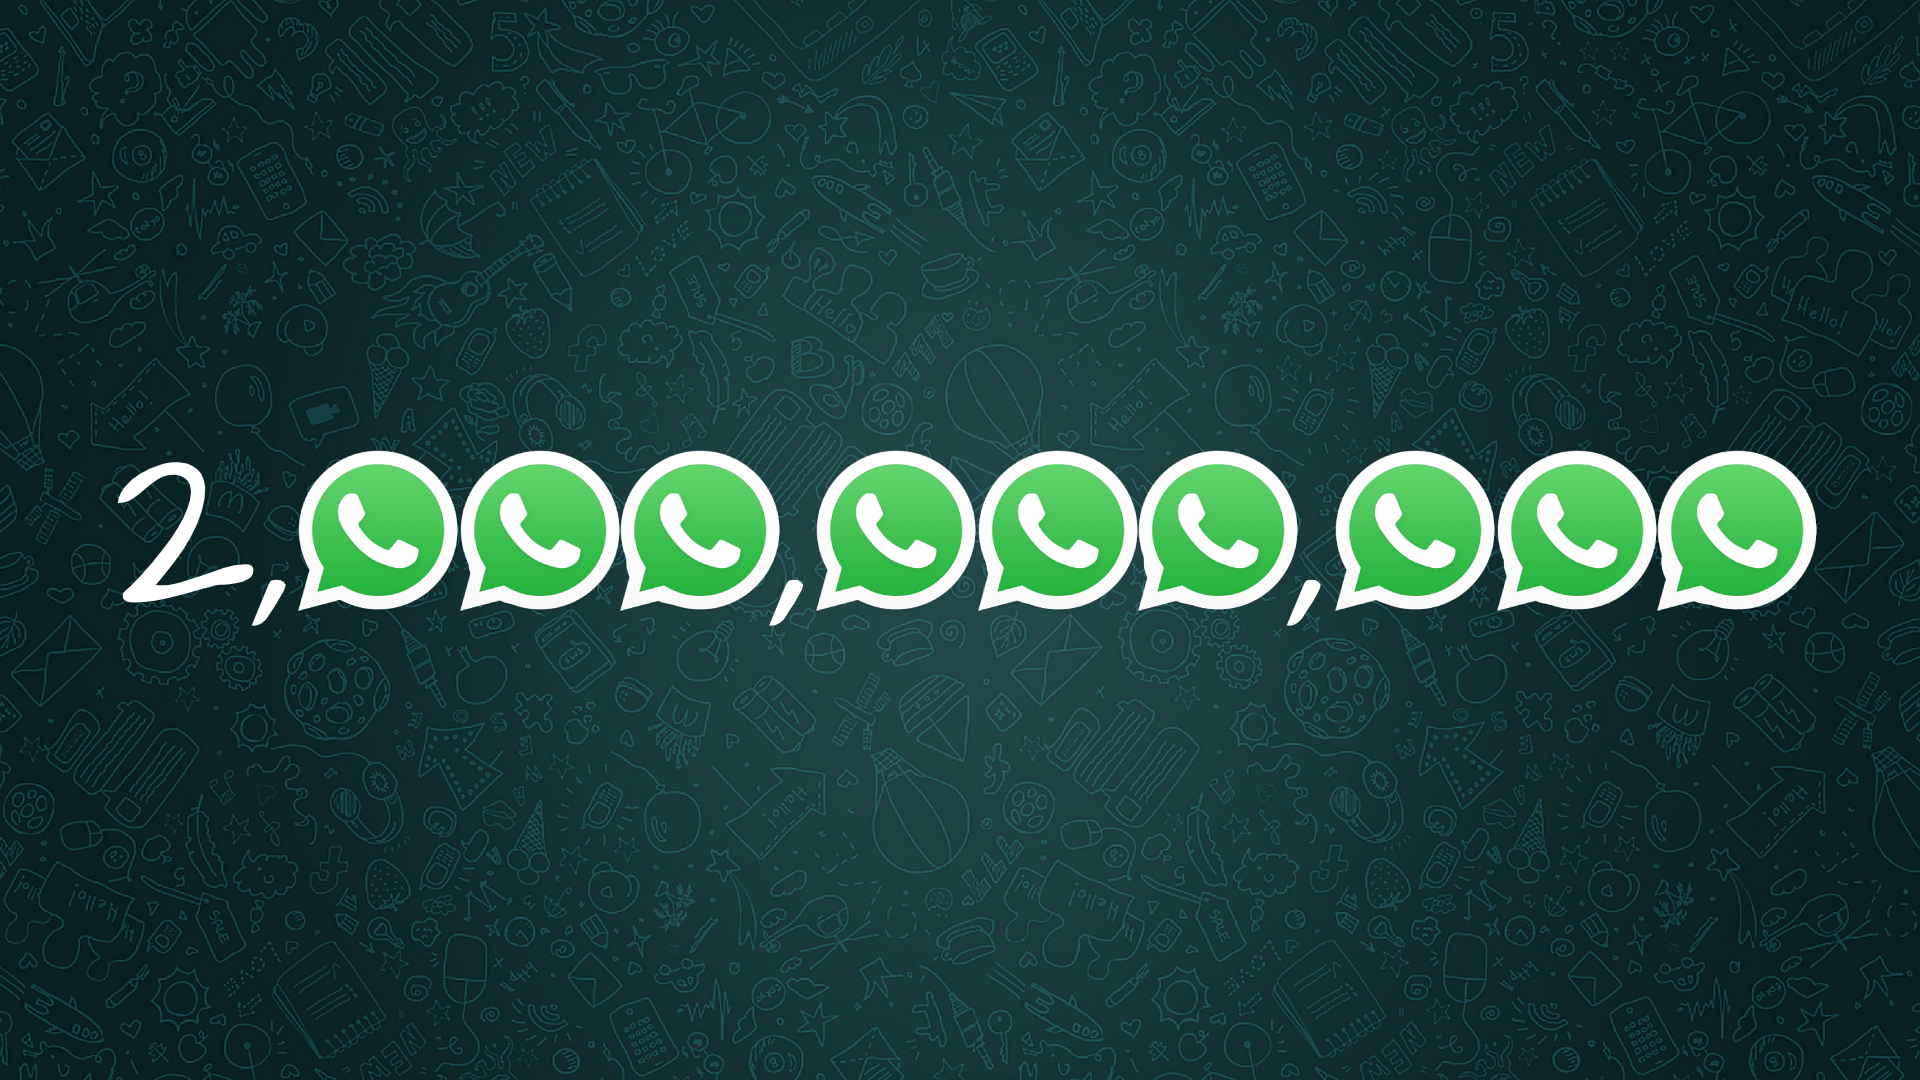 WhatsApp hits 2B users, defends encryption features